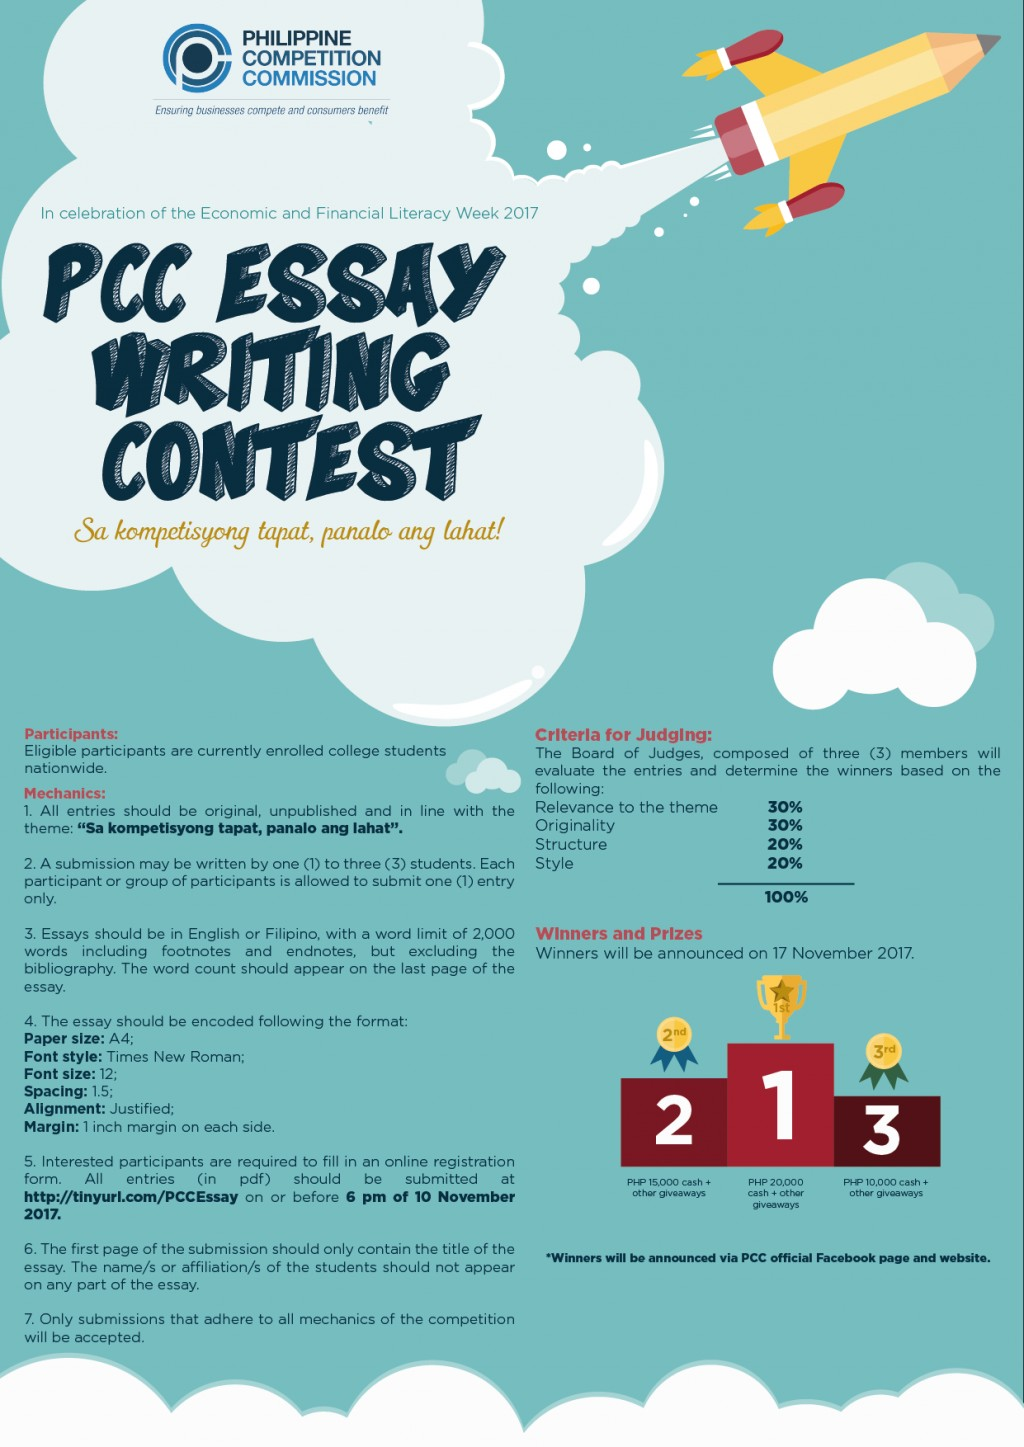 004 Essay Example Writing Contest Poster Final Incredible Free Contests 2018 International Competitions For High School Students India Large